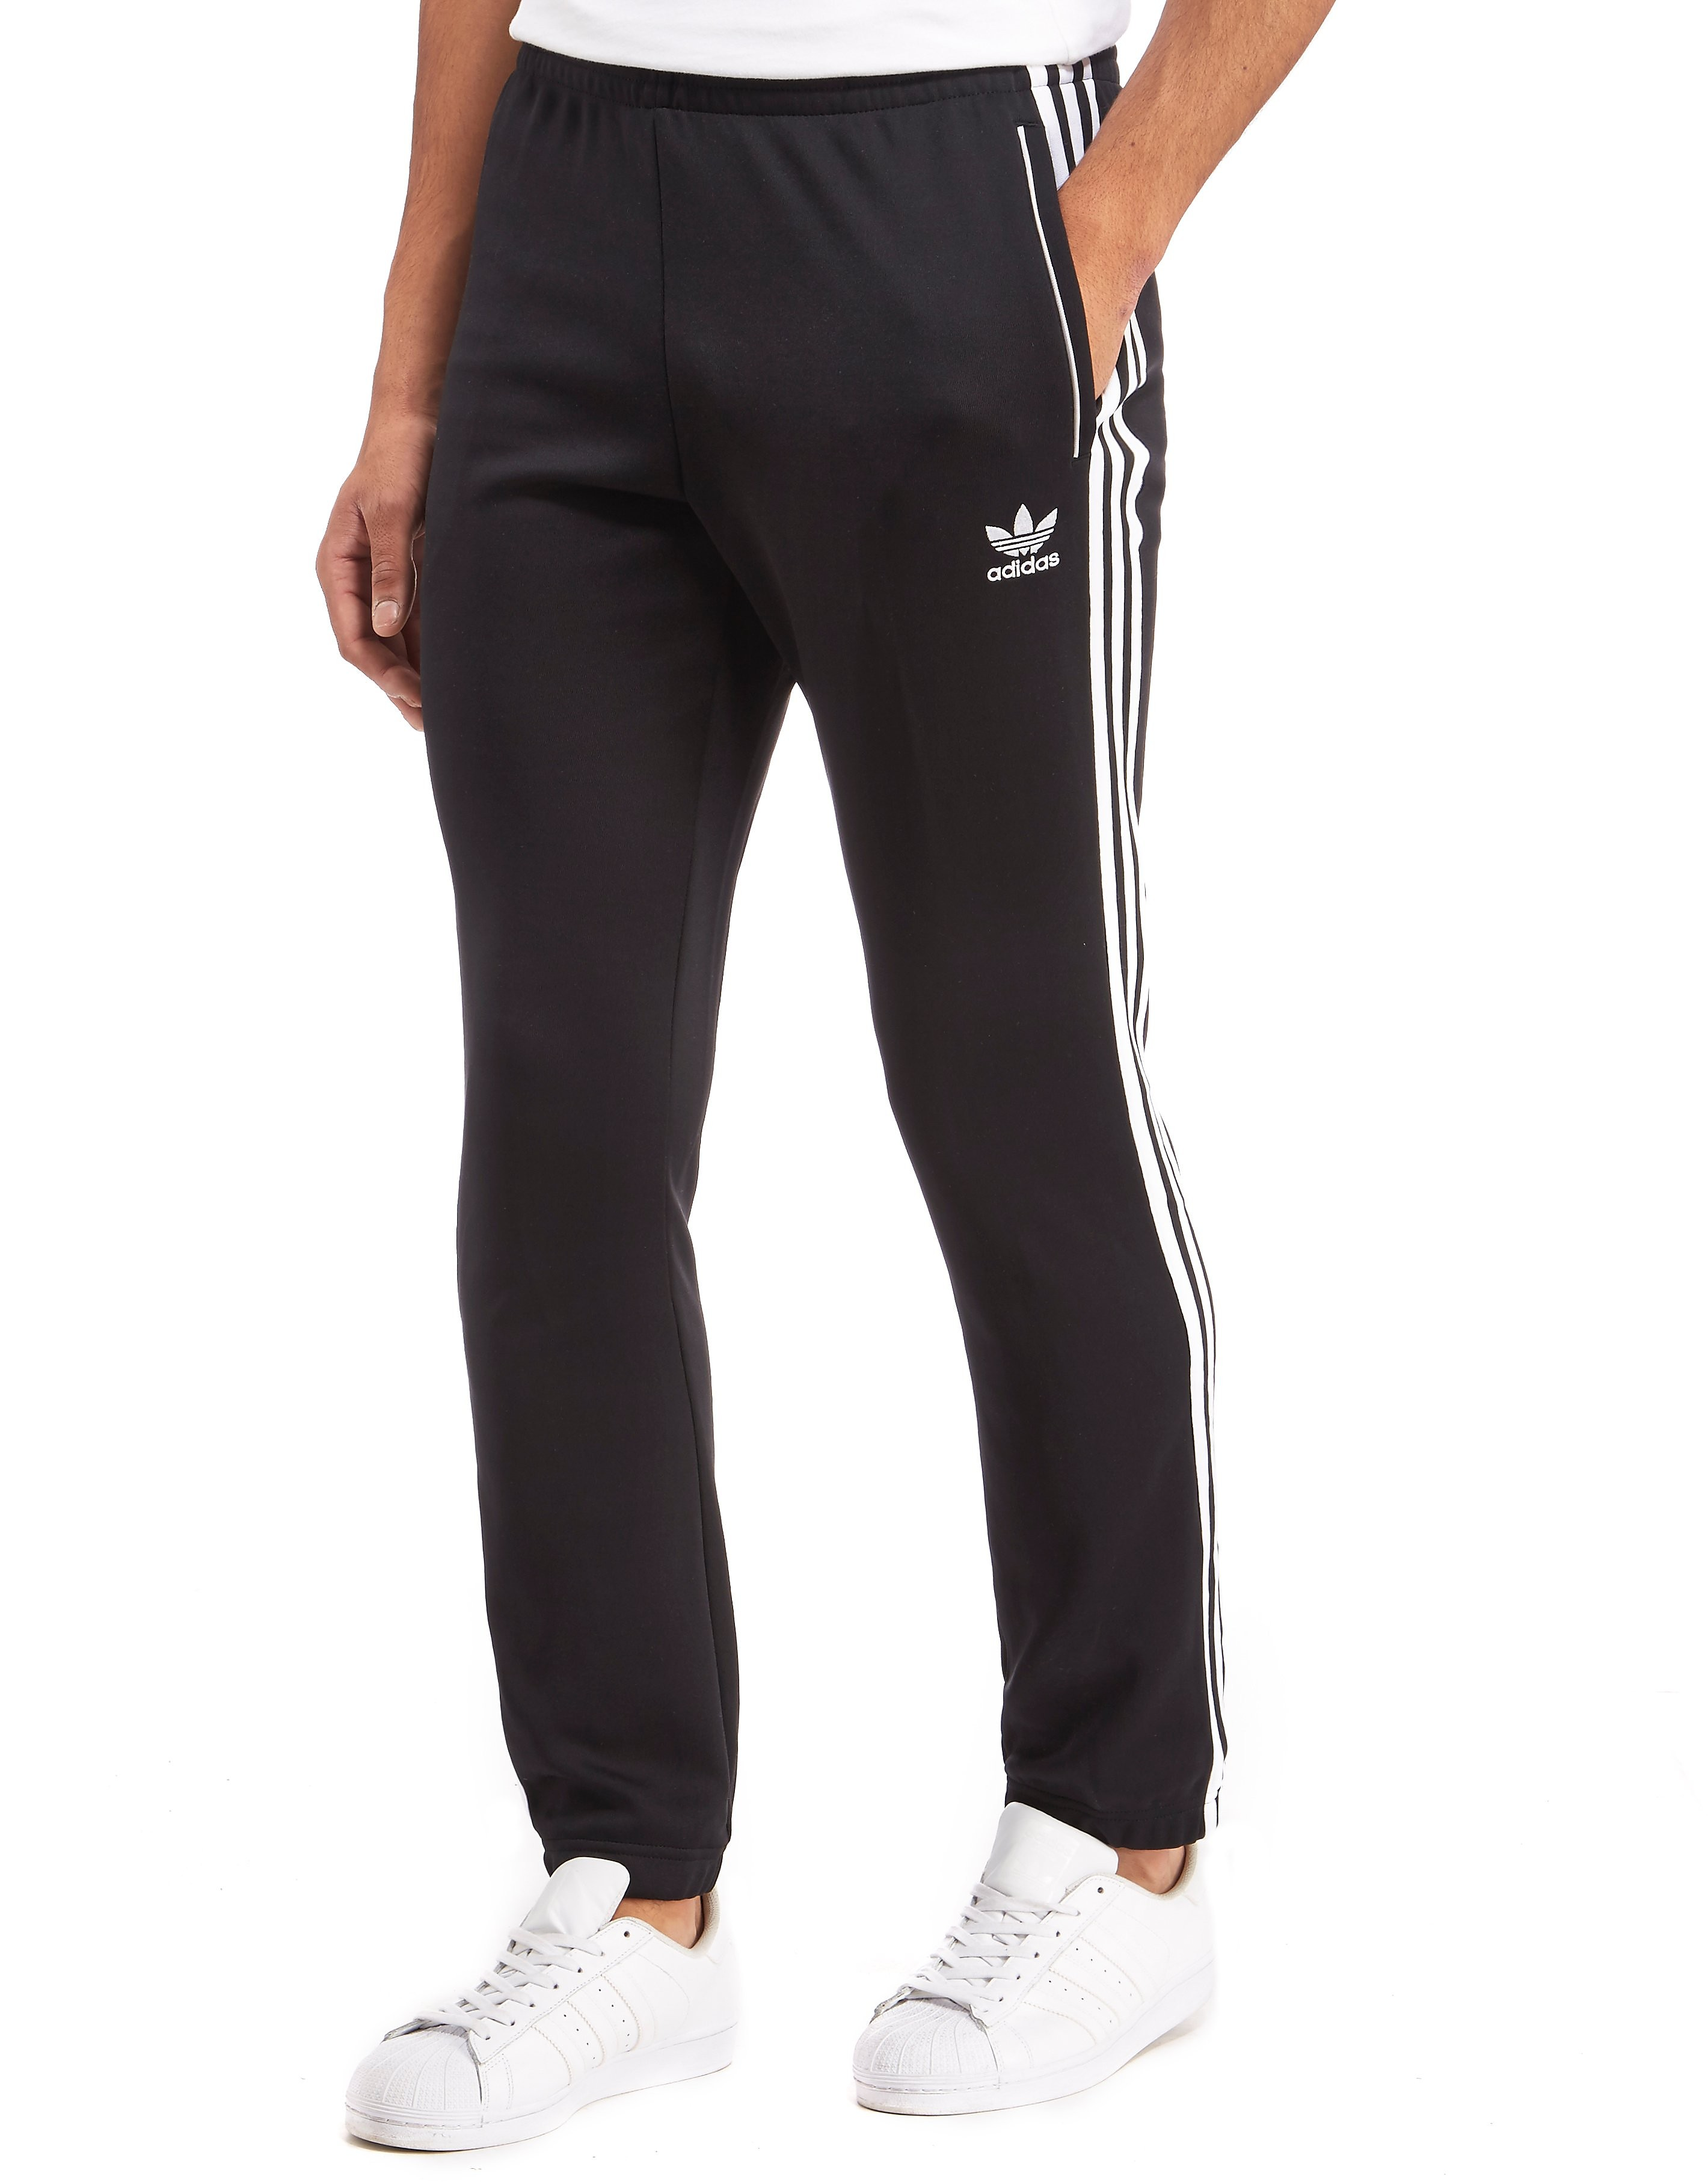 adidas Originals 3 Stripes Superstar Track Pants